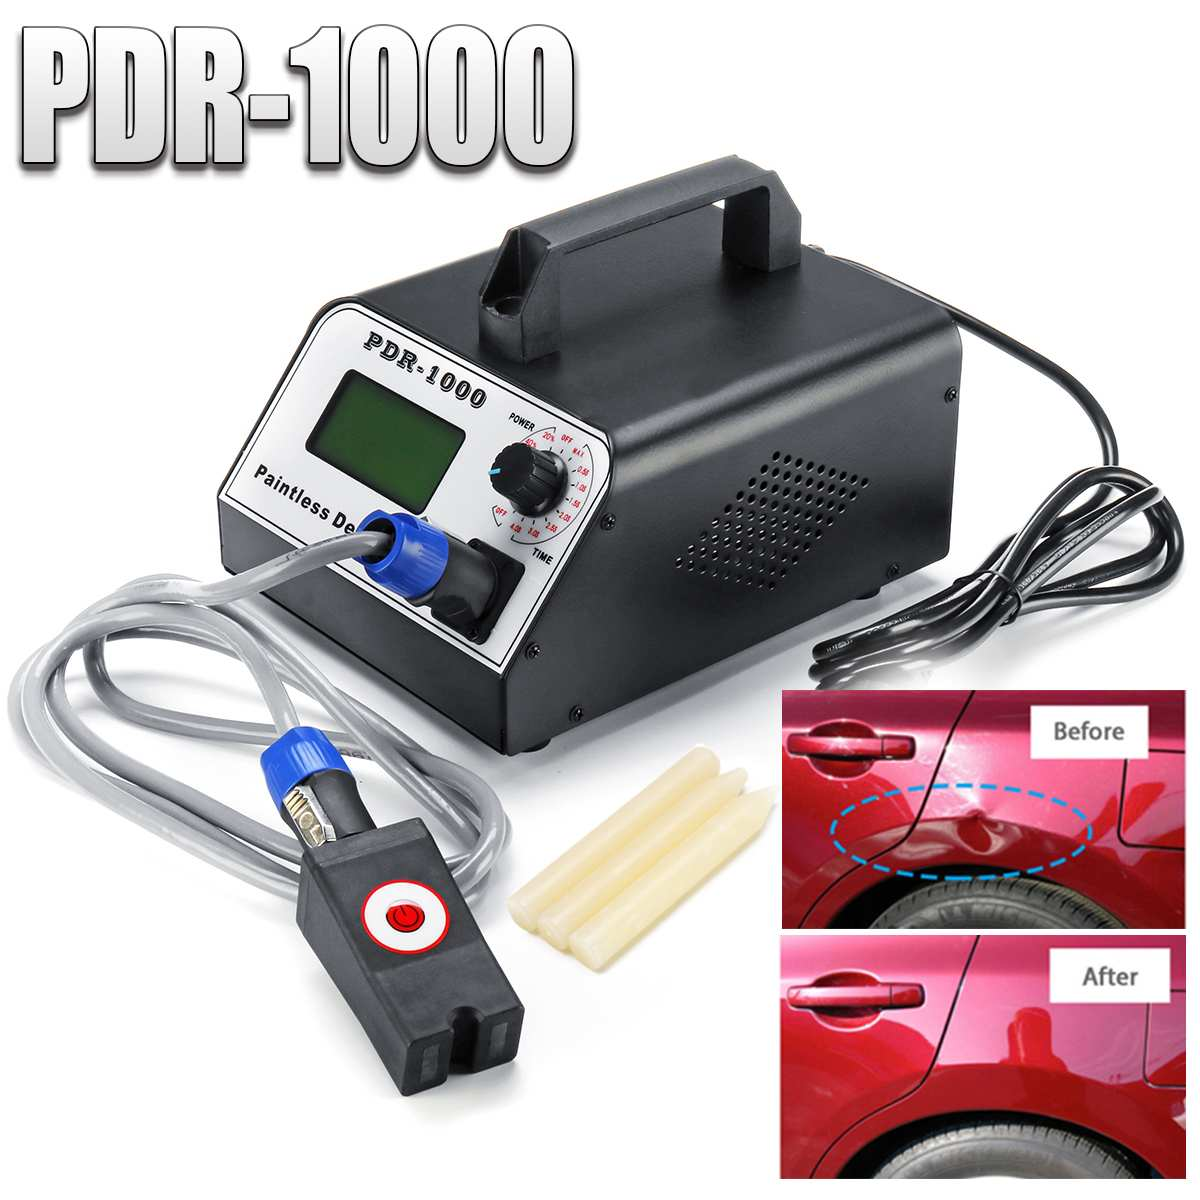 Induction Heater Car Dent Repair Paintless Remover For Removing Dents 1000W Hot Box Tool Set For Car Body Repair 220V/110V